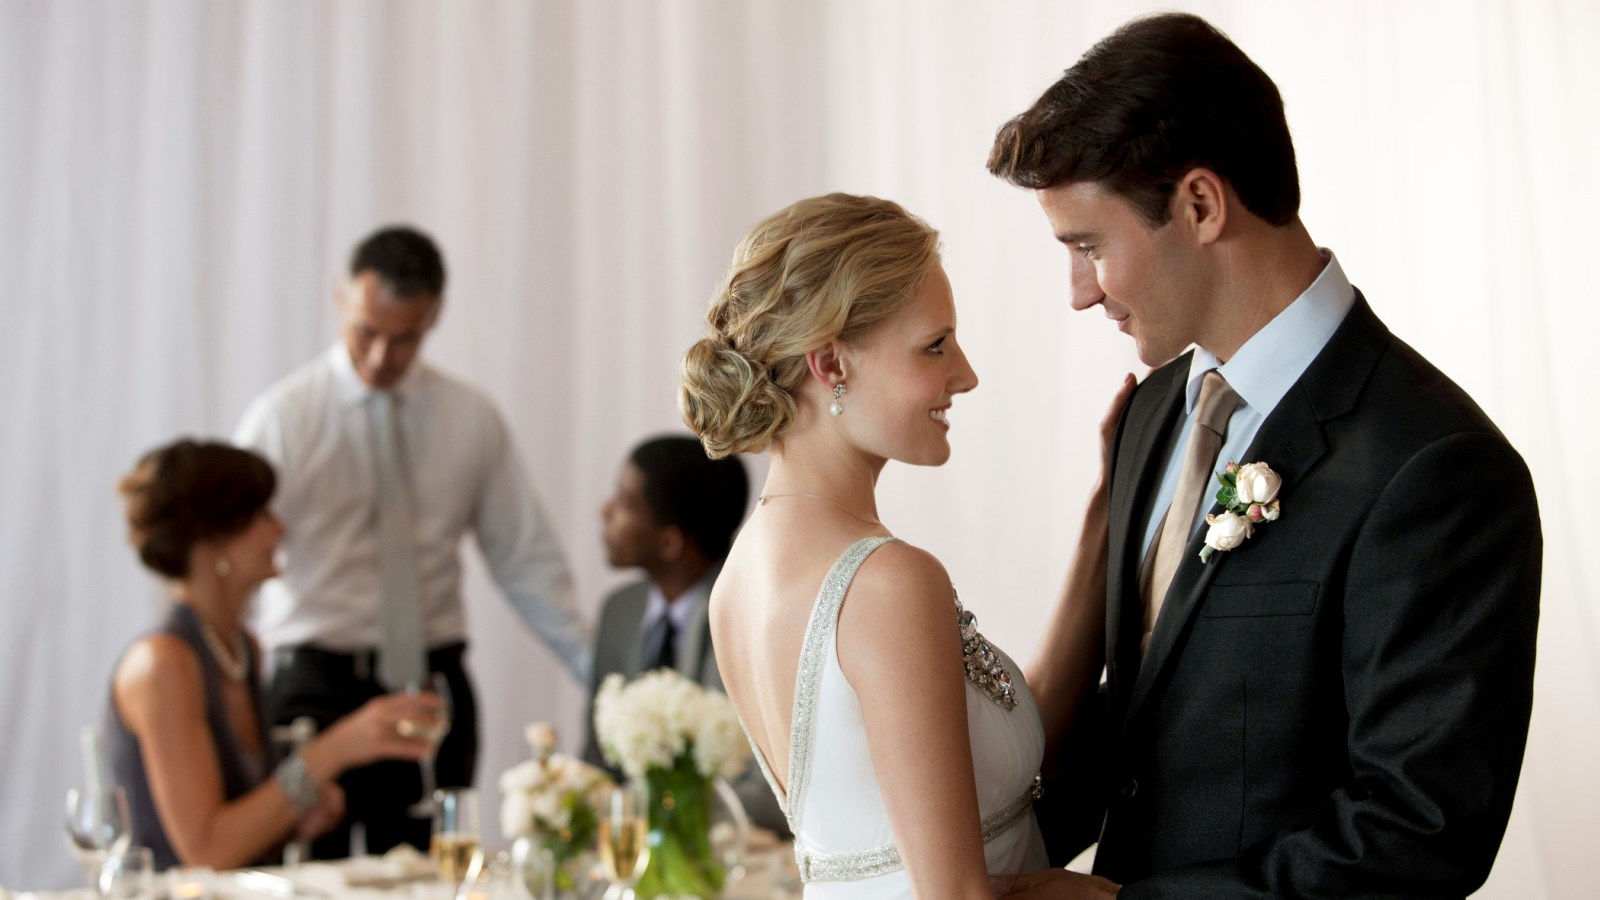 Calgary Wedding Venues - Ceremony